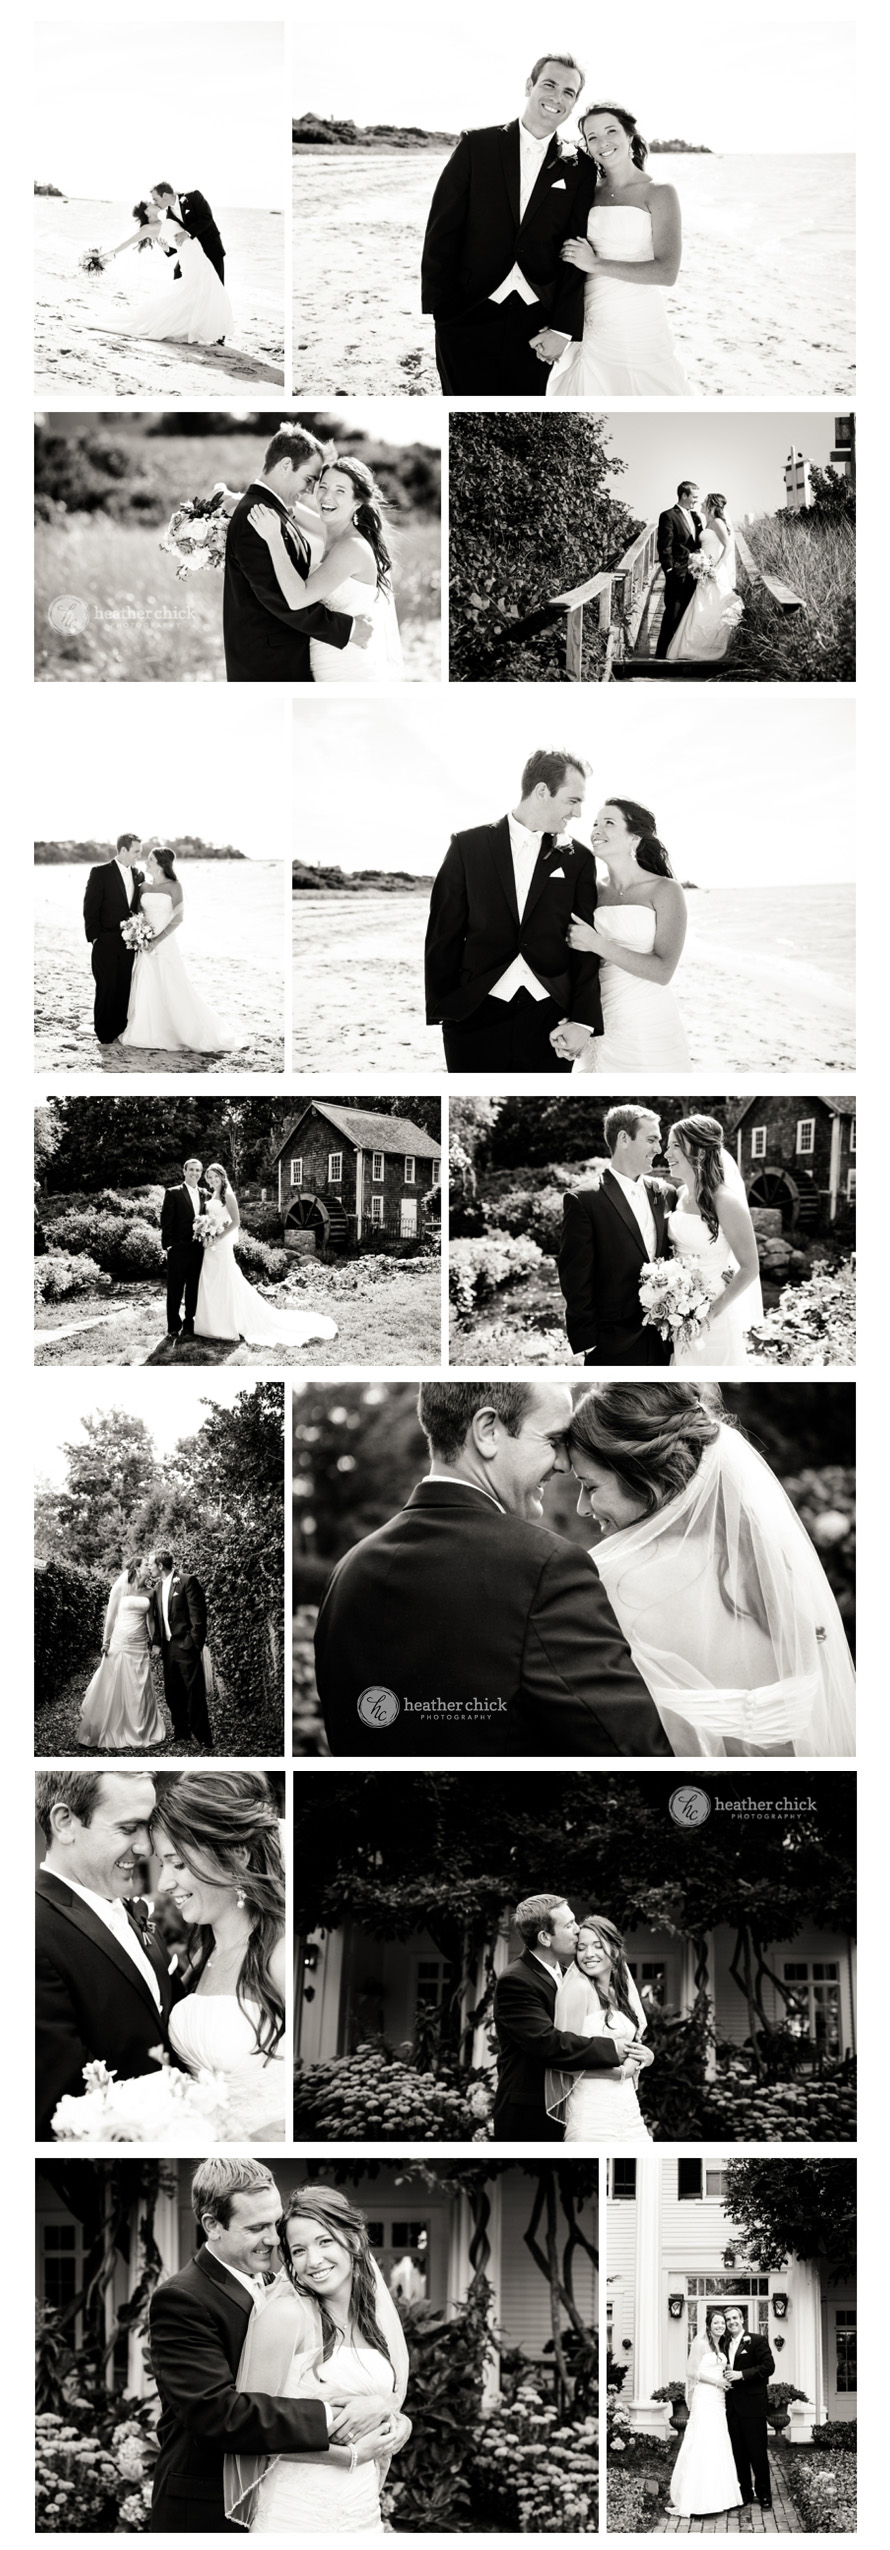 captain-linnell-house-cape-cod-wedding-photographer-heather-chick-photography